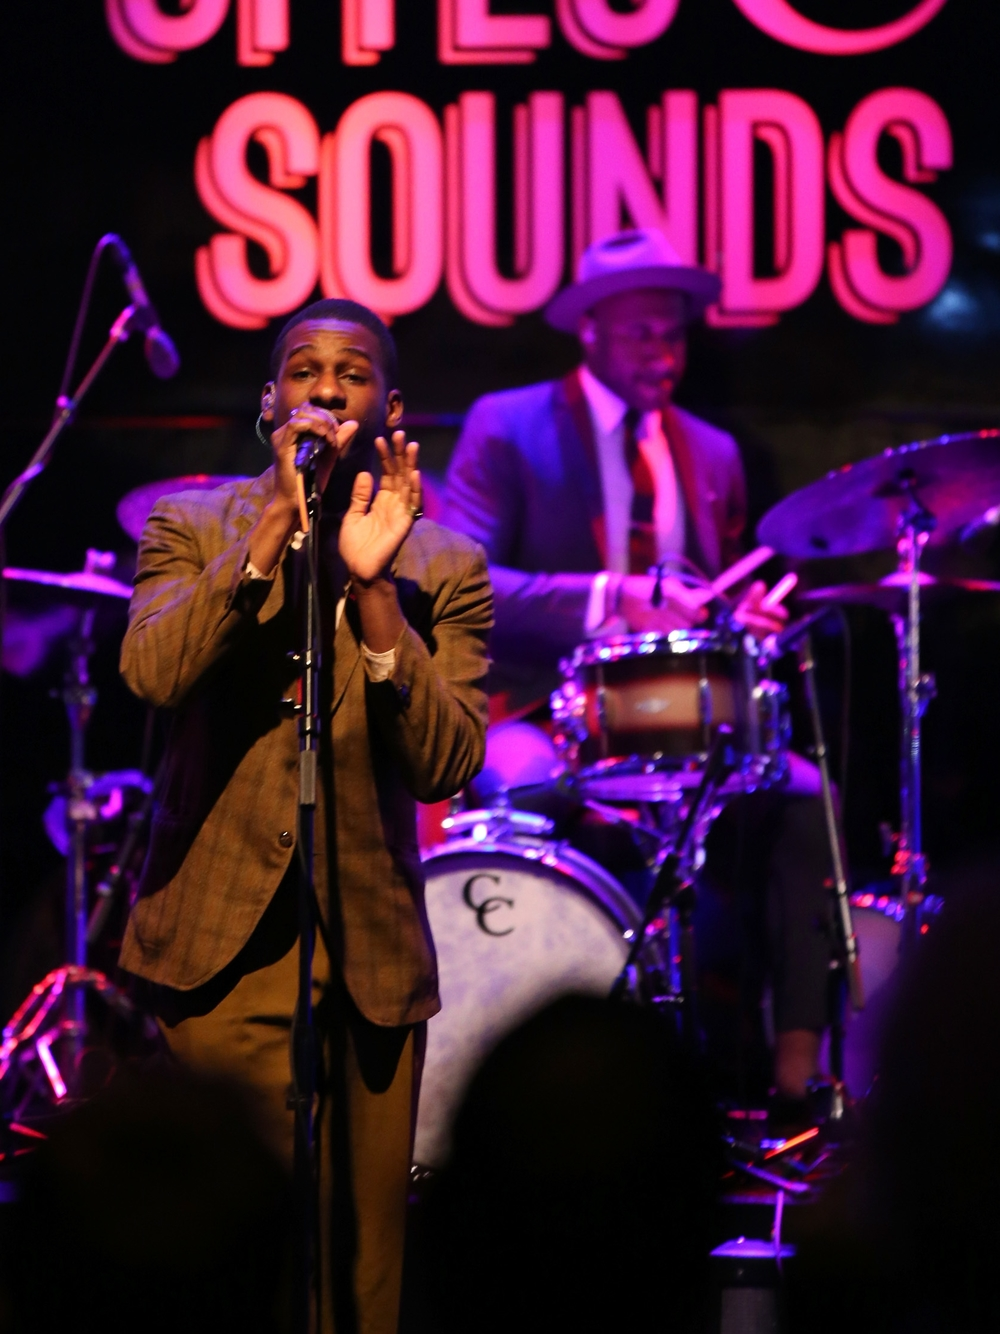 Leon Bridges Grammy's Show